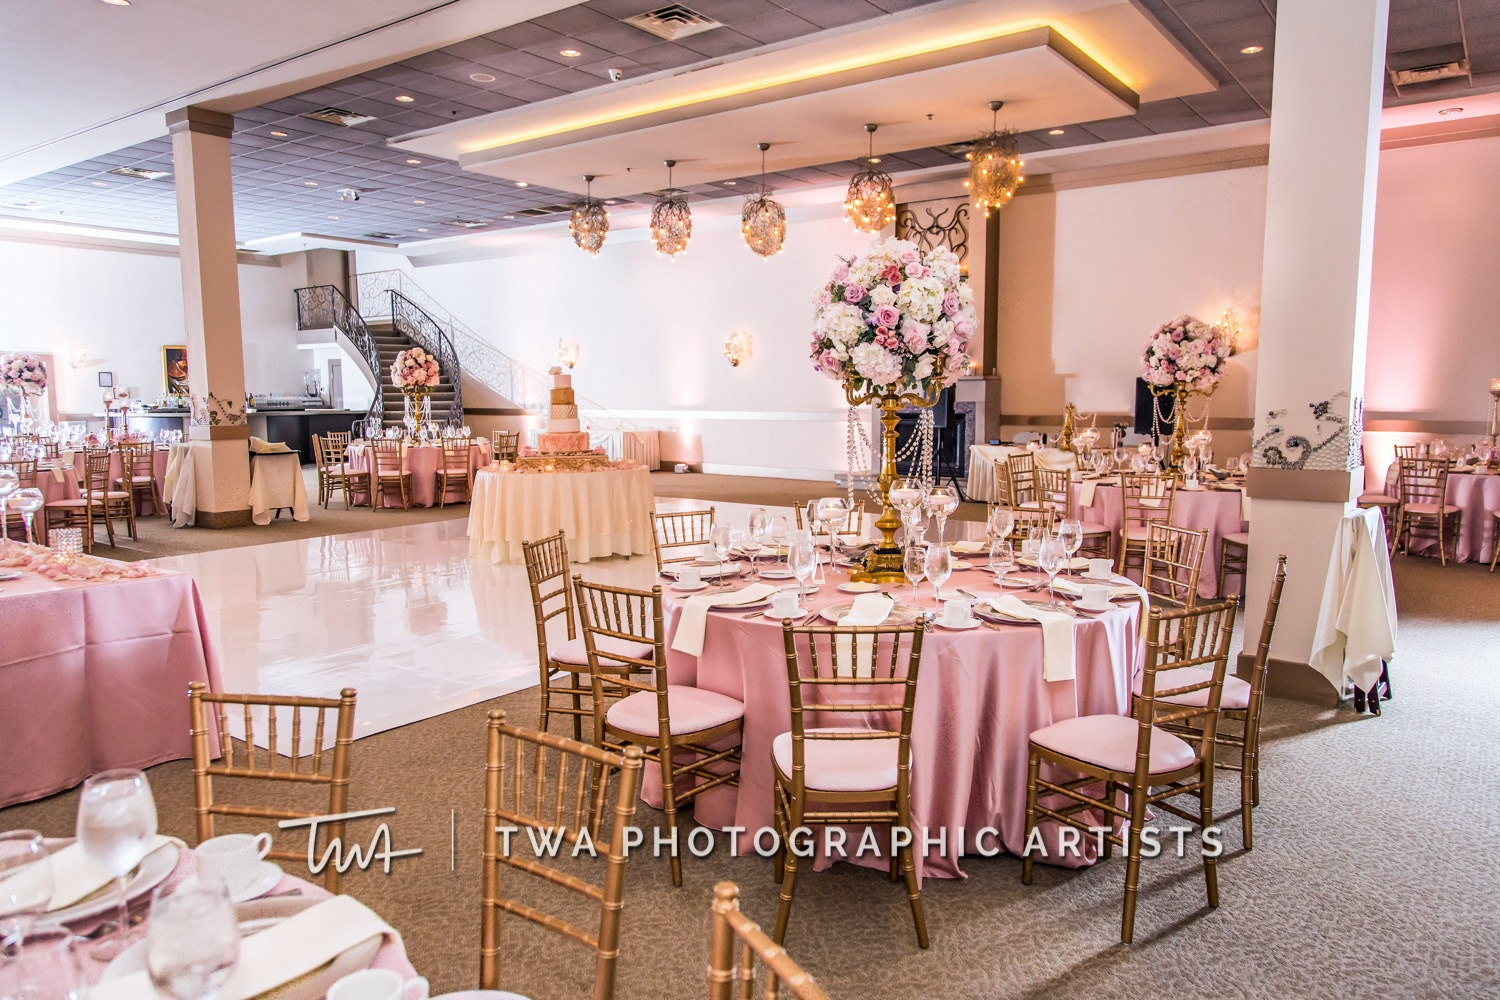 Chicago-Wedding-Photographer-TWA-Photographic-Artists-Belvedere-Banquets_Lavender_Chambers_SG-0383-Edit